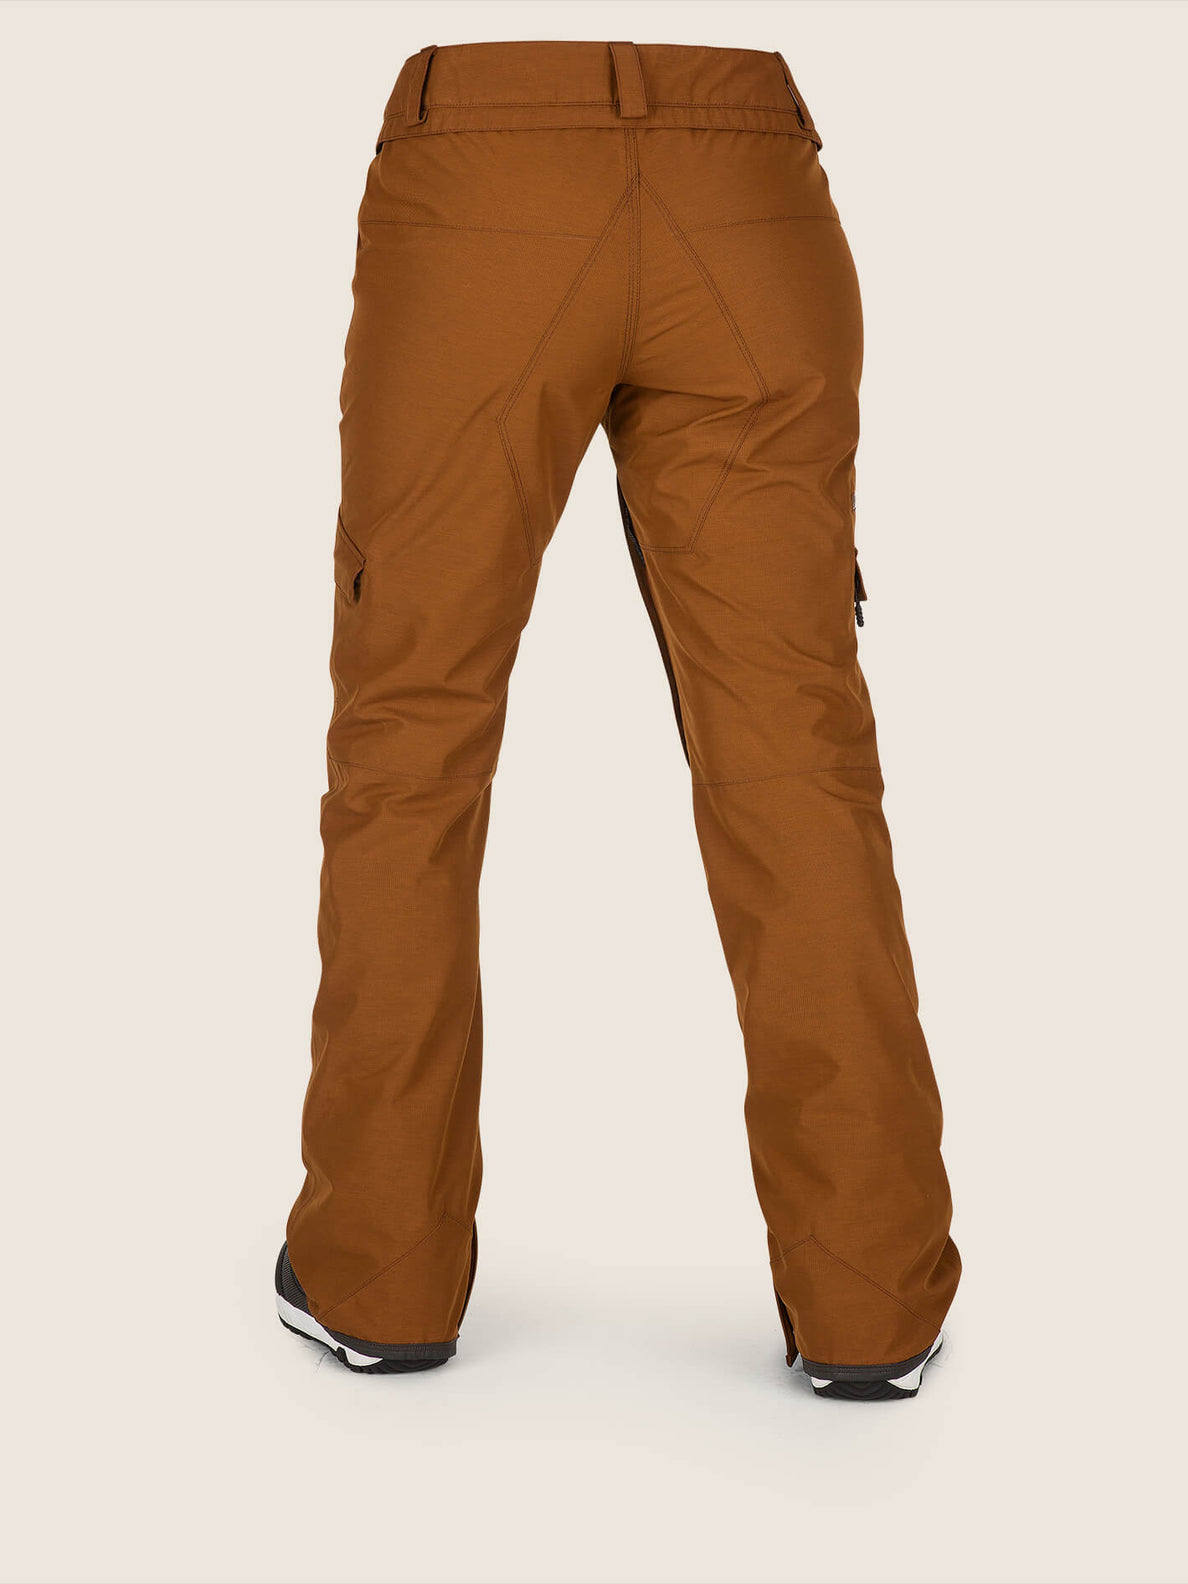 Aston Gore-tex Pant In Copper, Back View